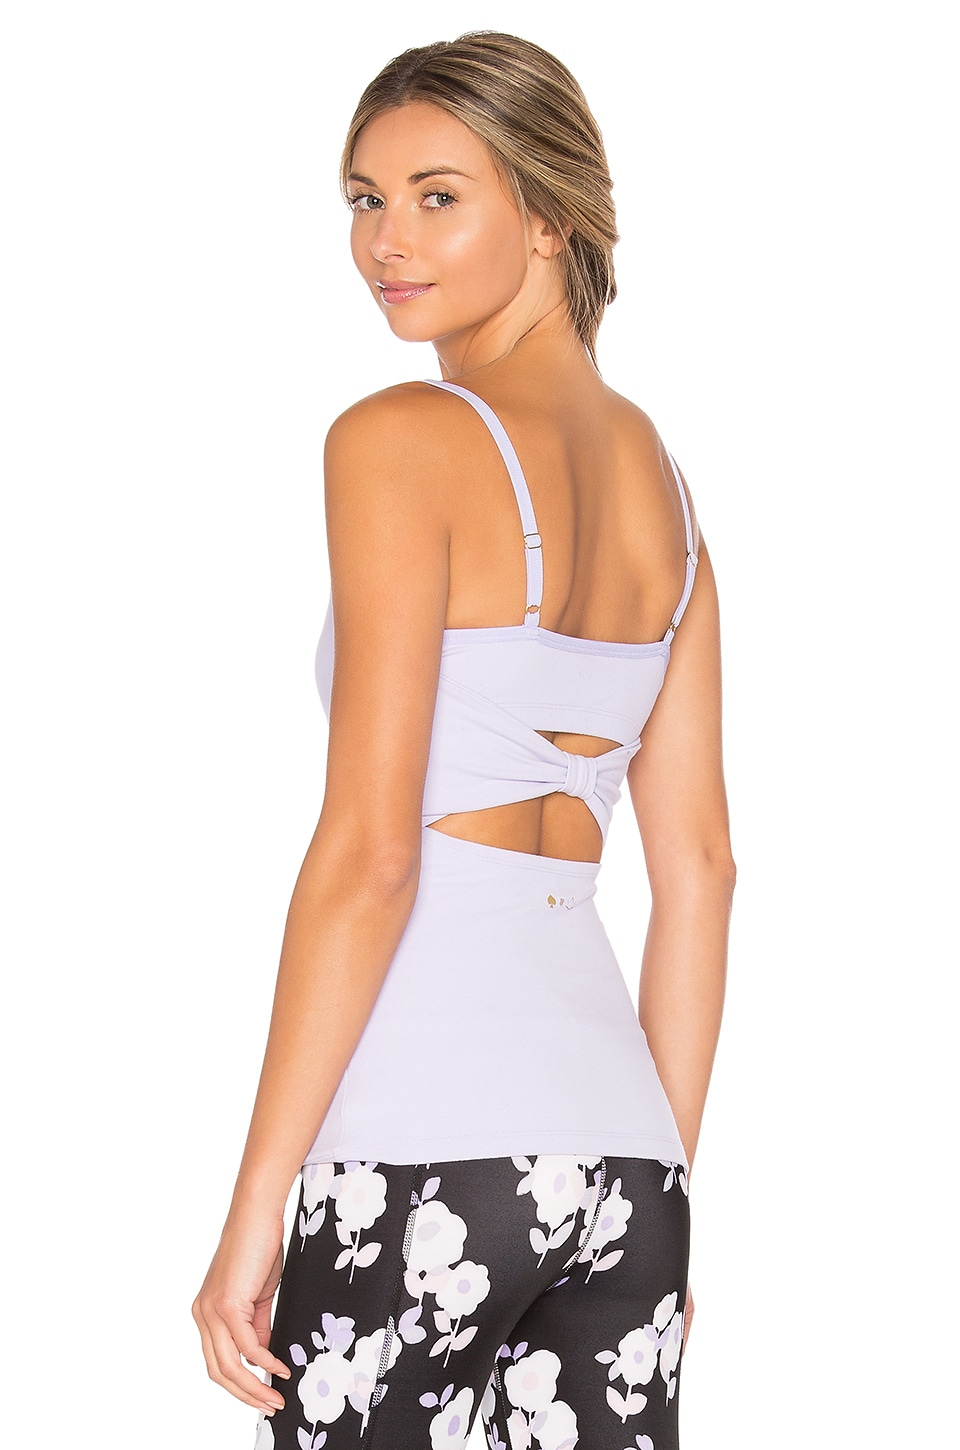 x kate spade Cinched Back Bow Tank by Beyond Yoga